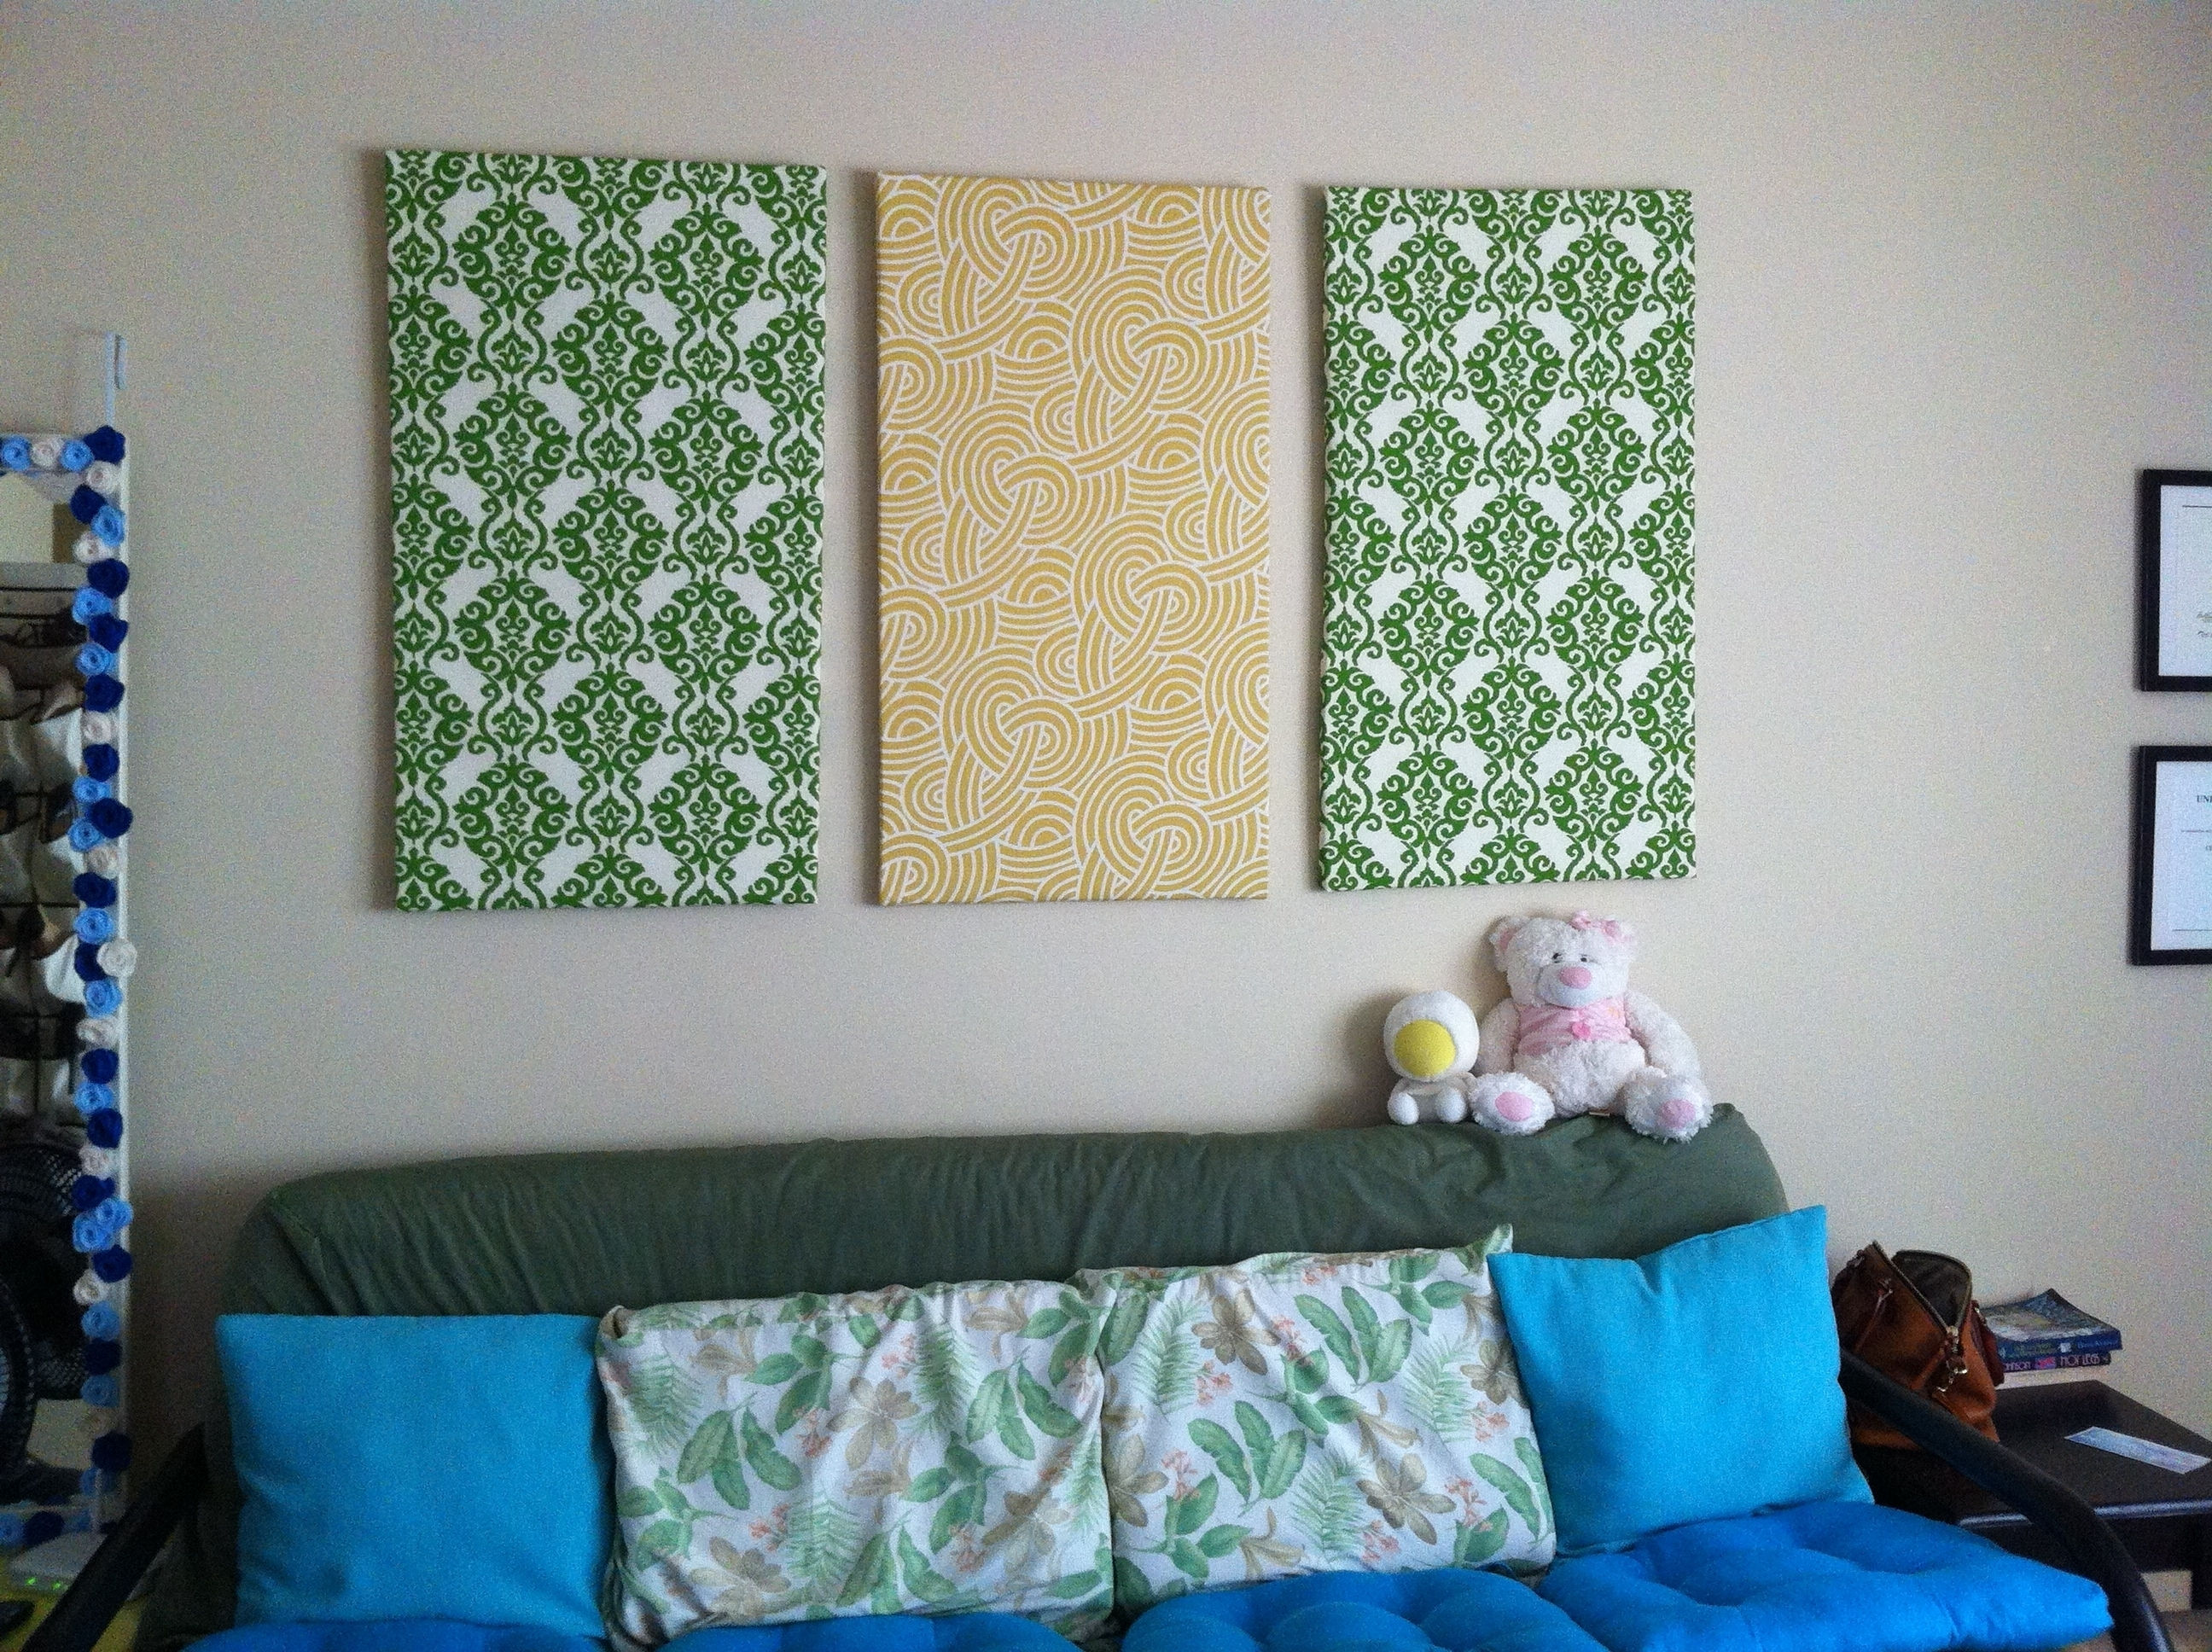 Some Kind Diy Wall Art To Decorating Homes — The Home Redesign Regarding Most Popular High End Fabric Wall Art (Gallery 14 of 15)